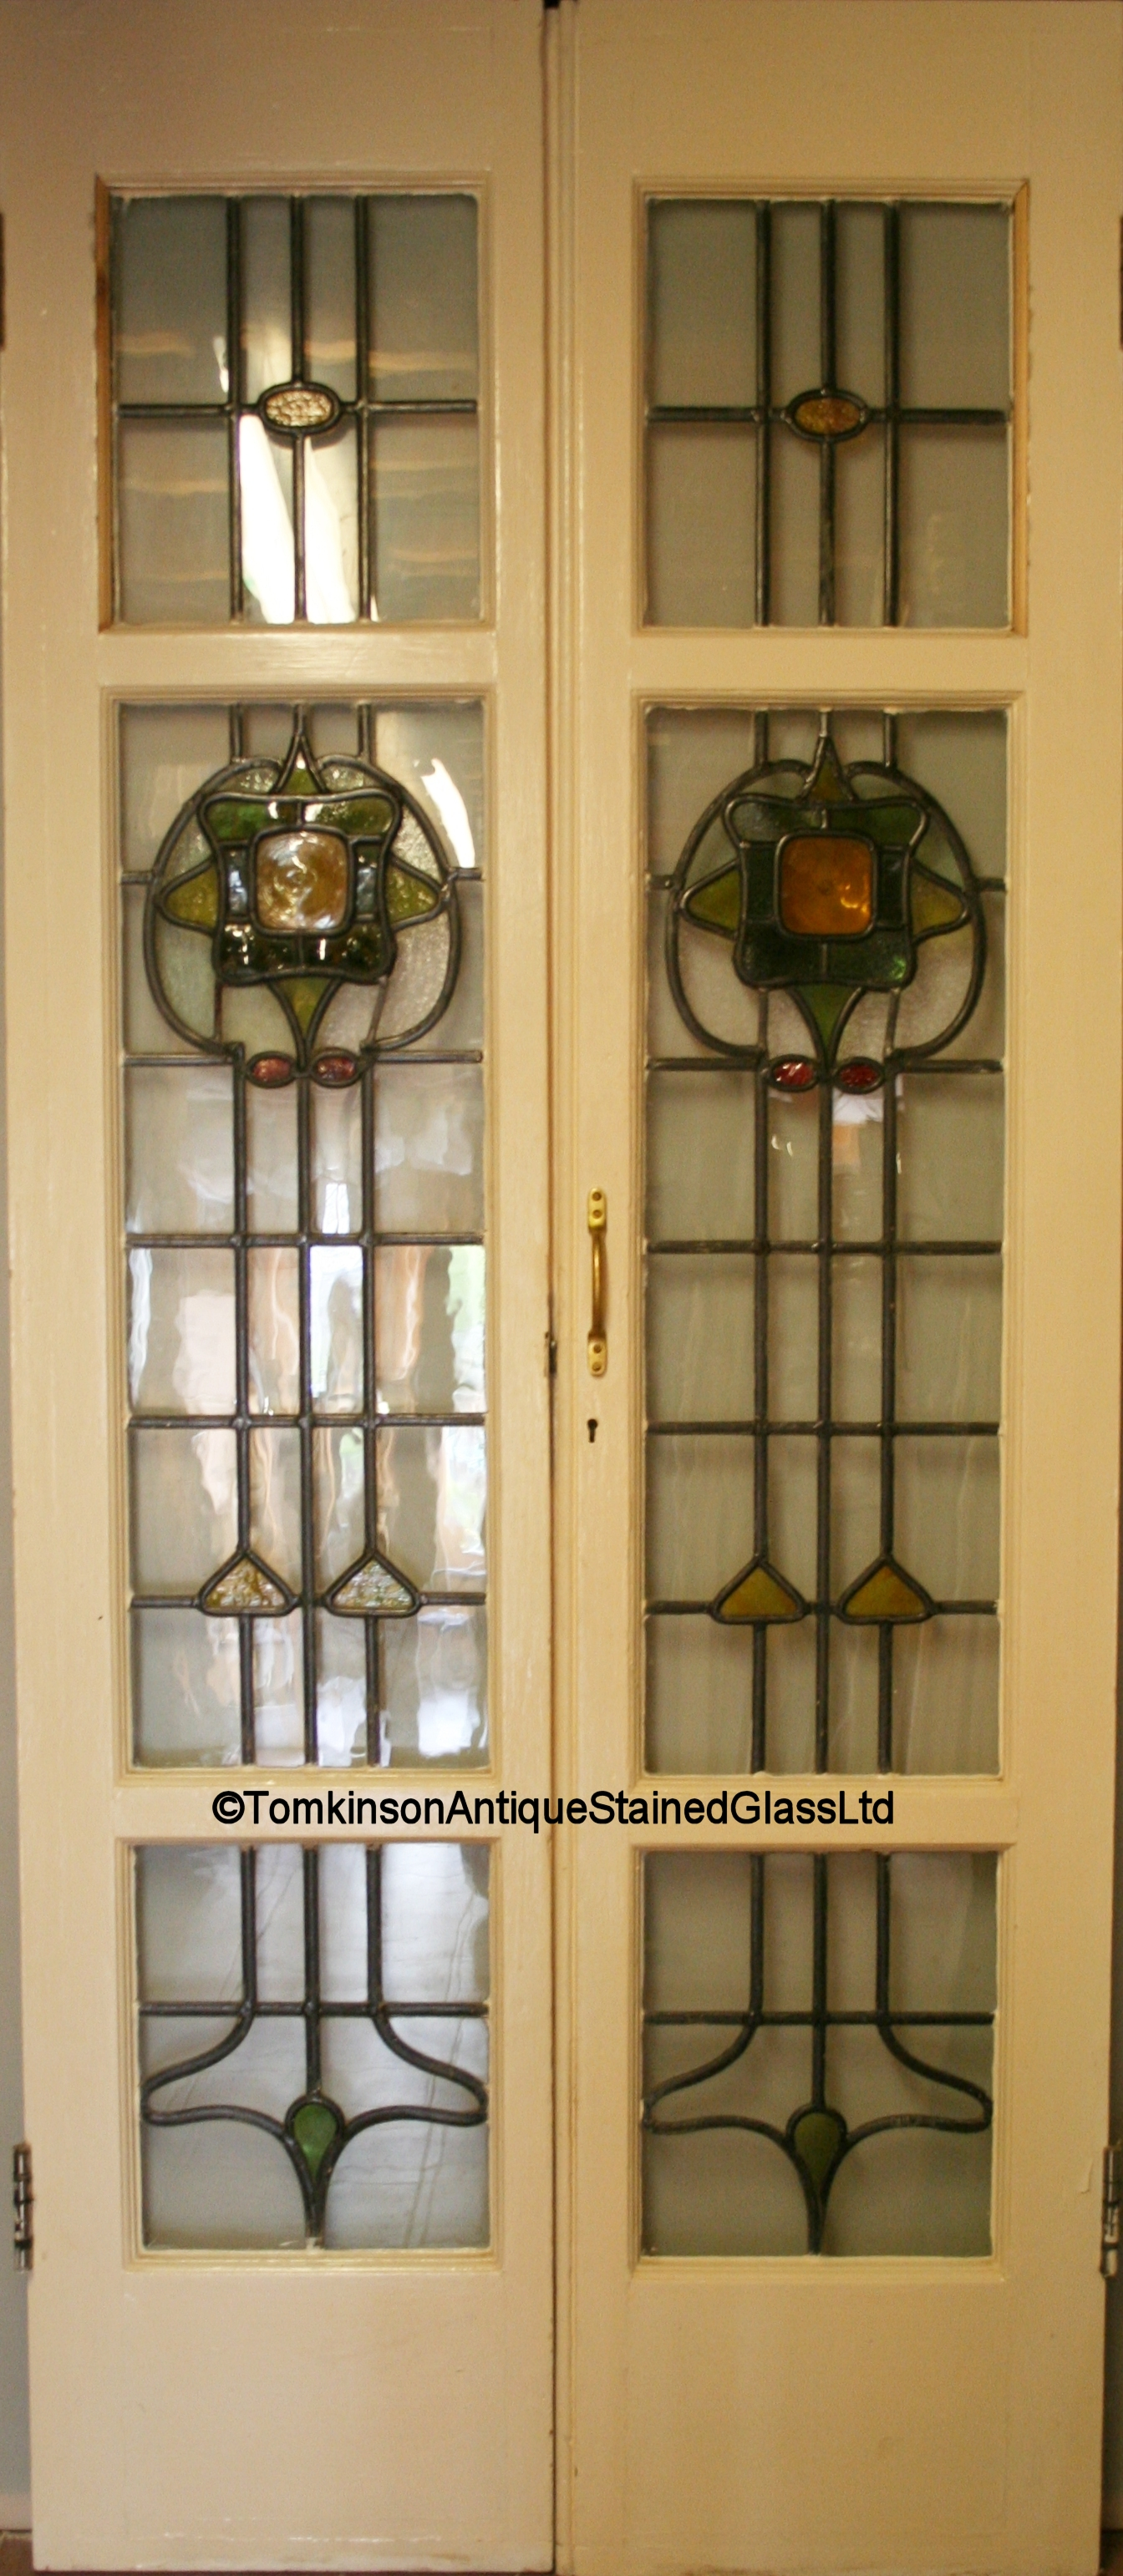 Ref Ed324 2 Edwardian Stained Glass Doors Pair Of French Doors